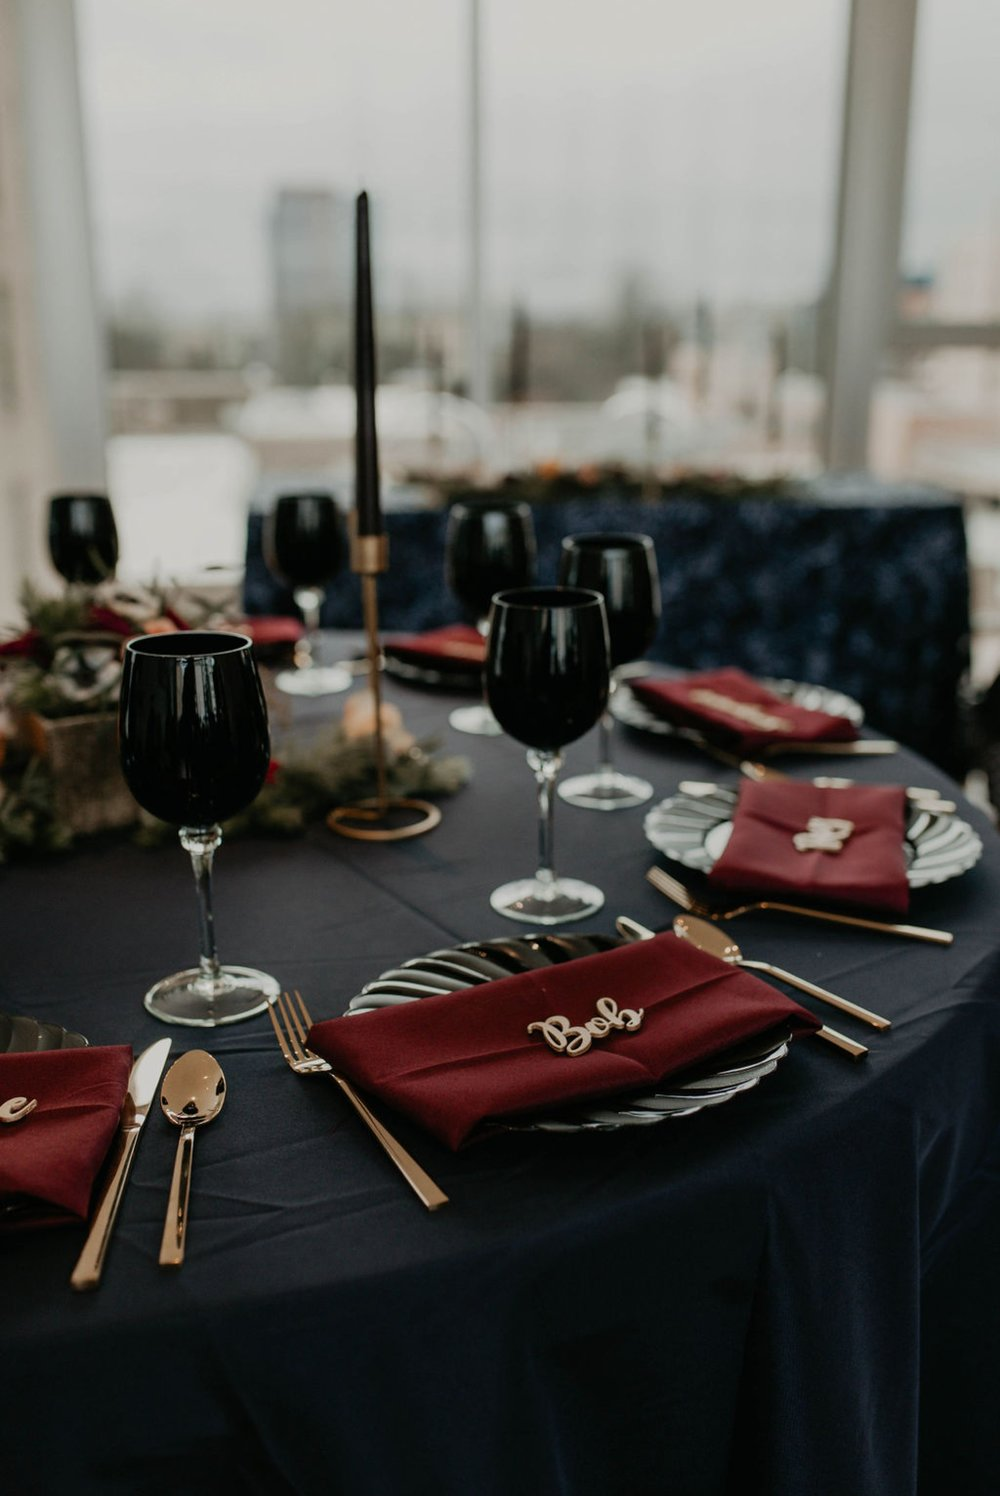 dark wedding table decorations - Navy tablecloth with burgundy napkins and gold laser cut name place cards, gold silverwear and black plates and black wine glasses by ce rental - gold candle stick holder with black candles - Matt Smarsh and Johanna Dye - Raleigh North Carolina Urban Downtown Wedding